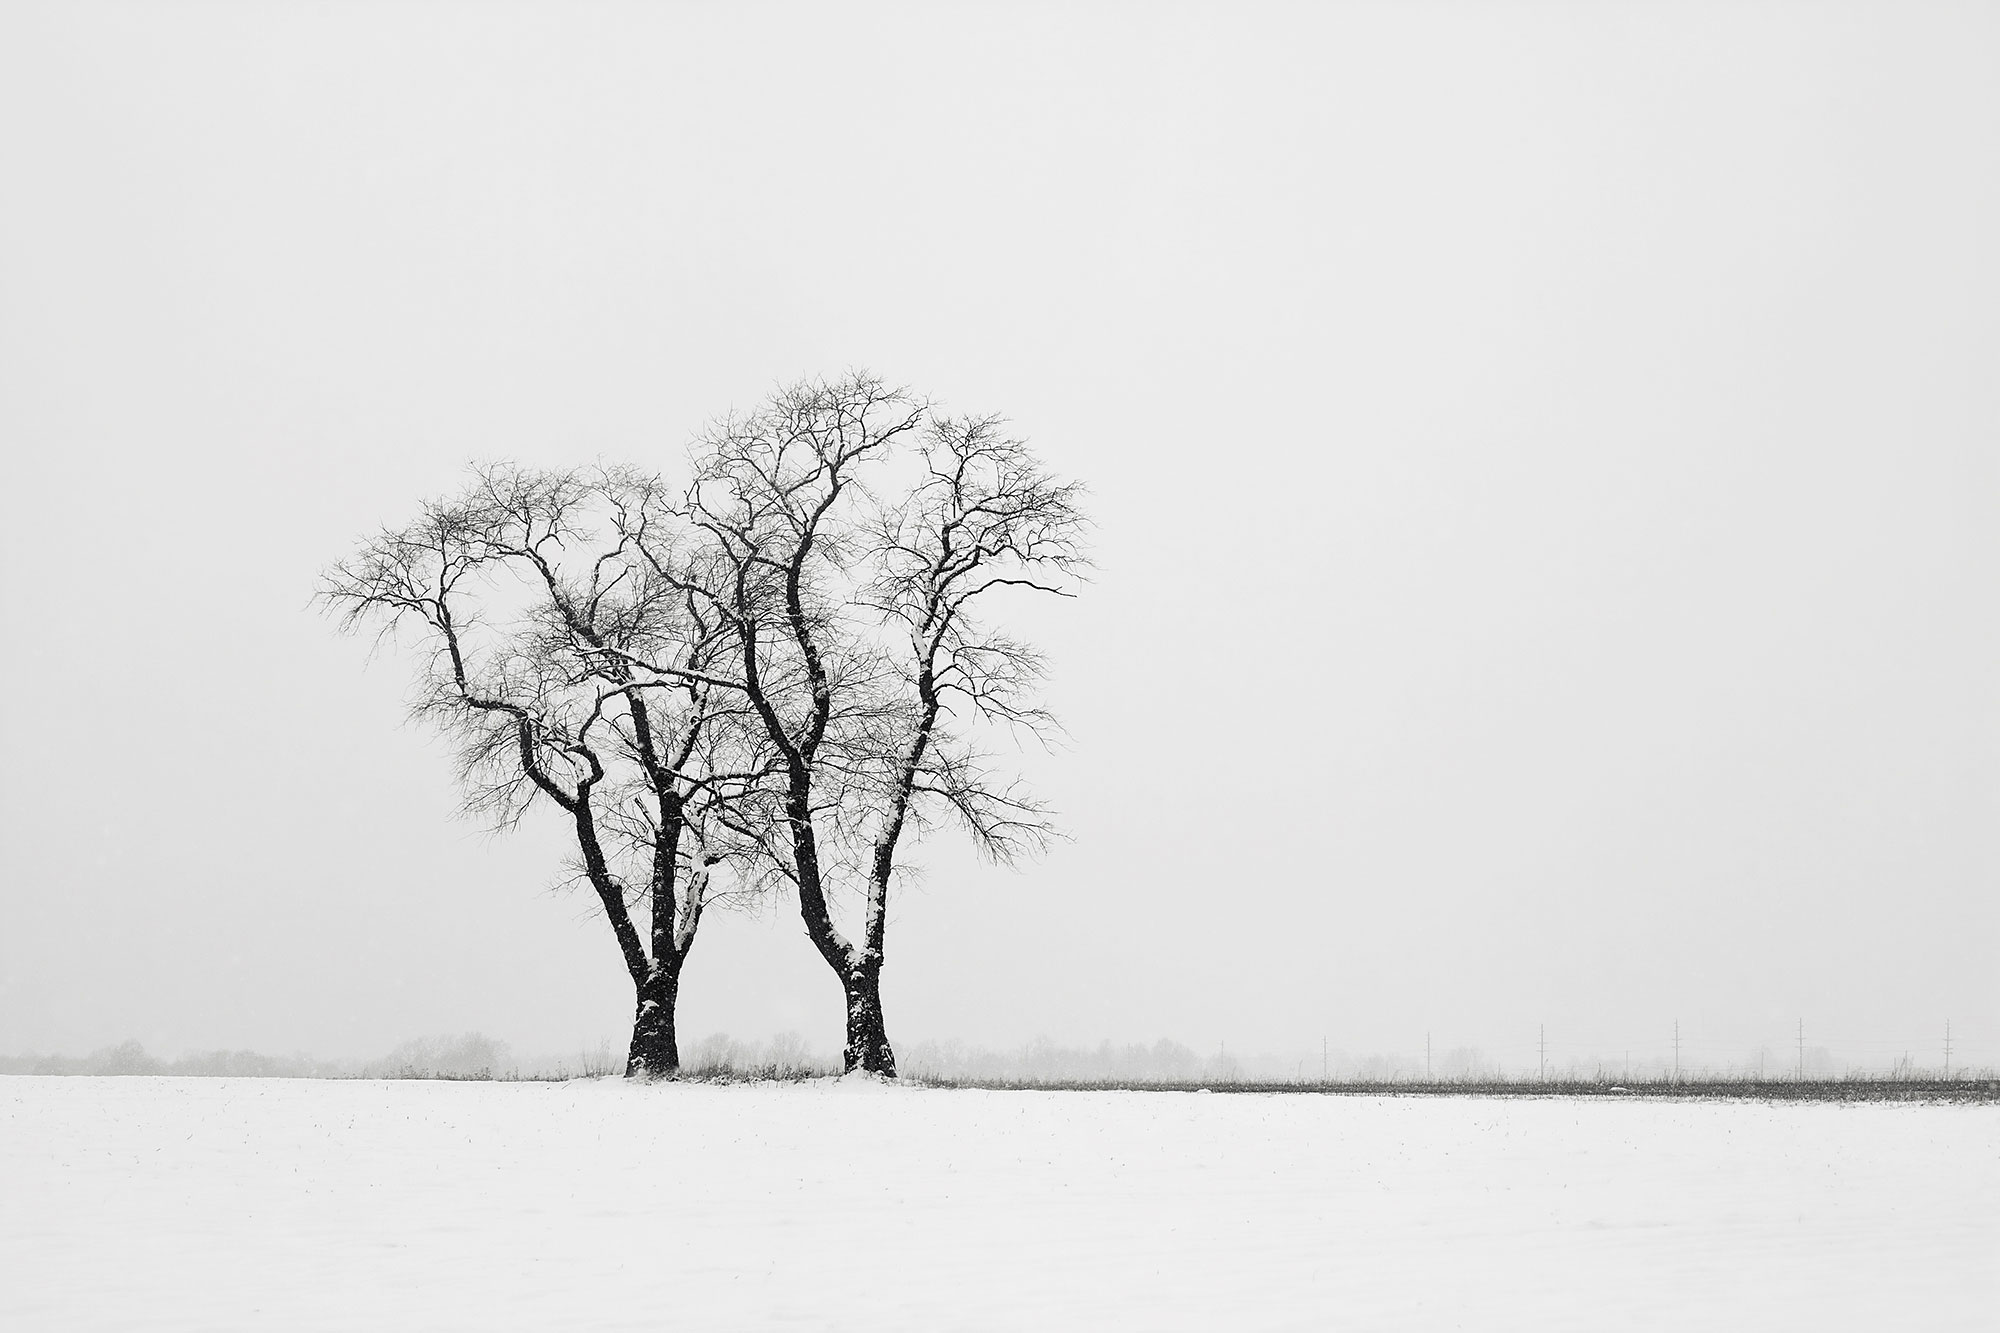 Snow covered trees in open field New Jersey-Companions